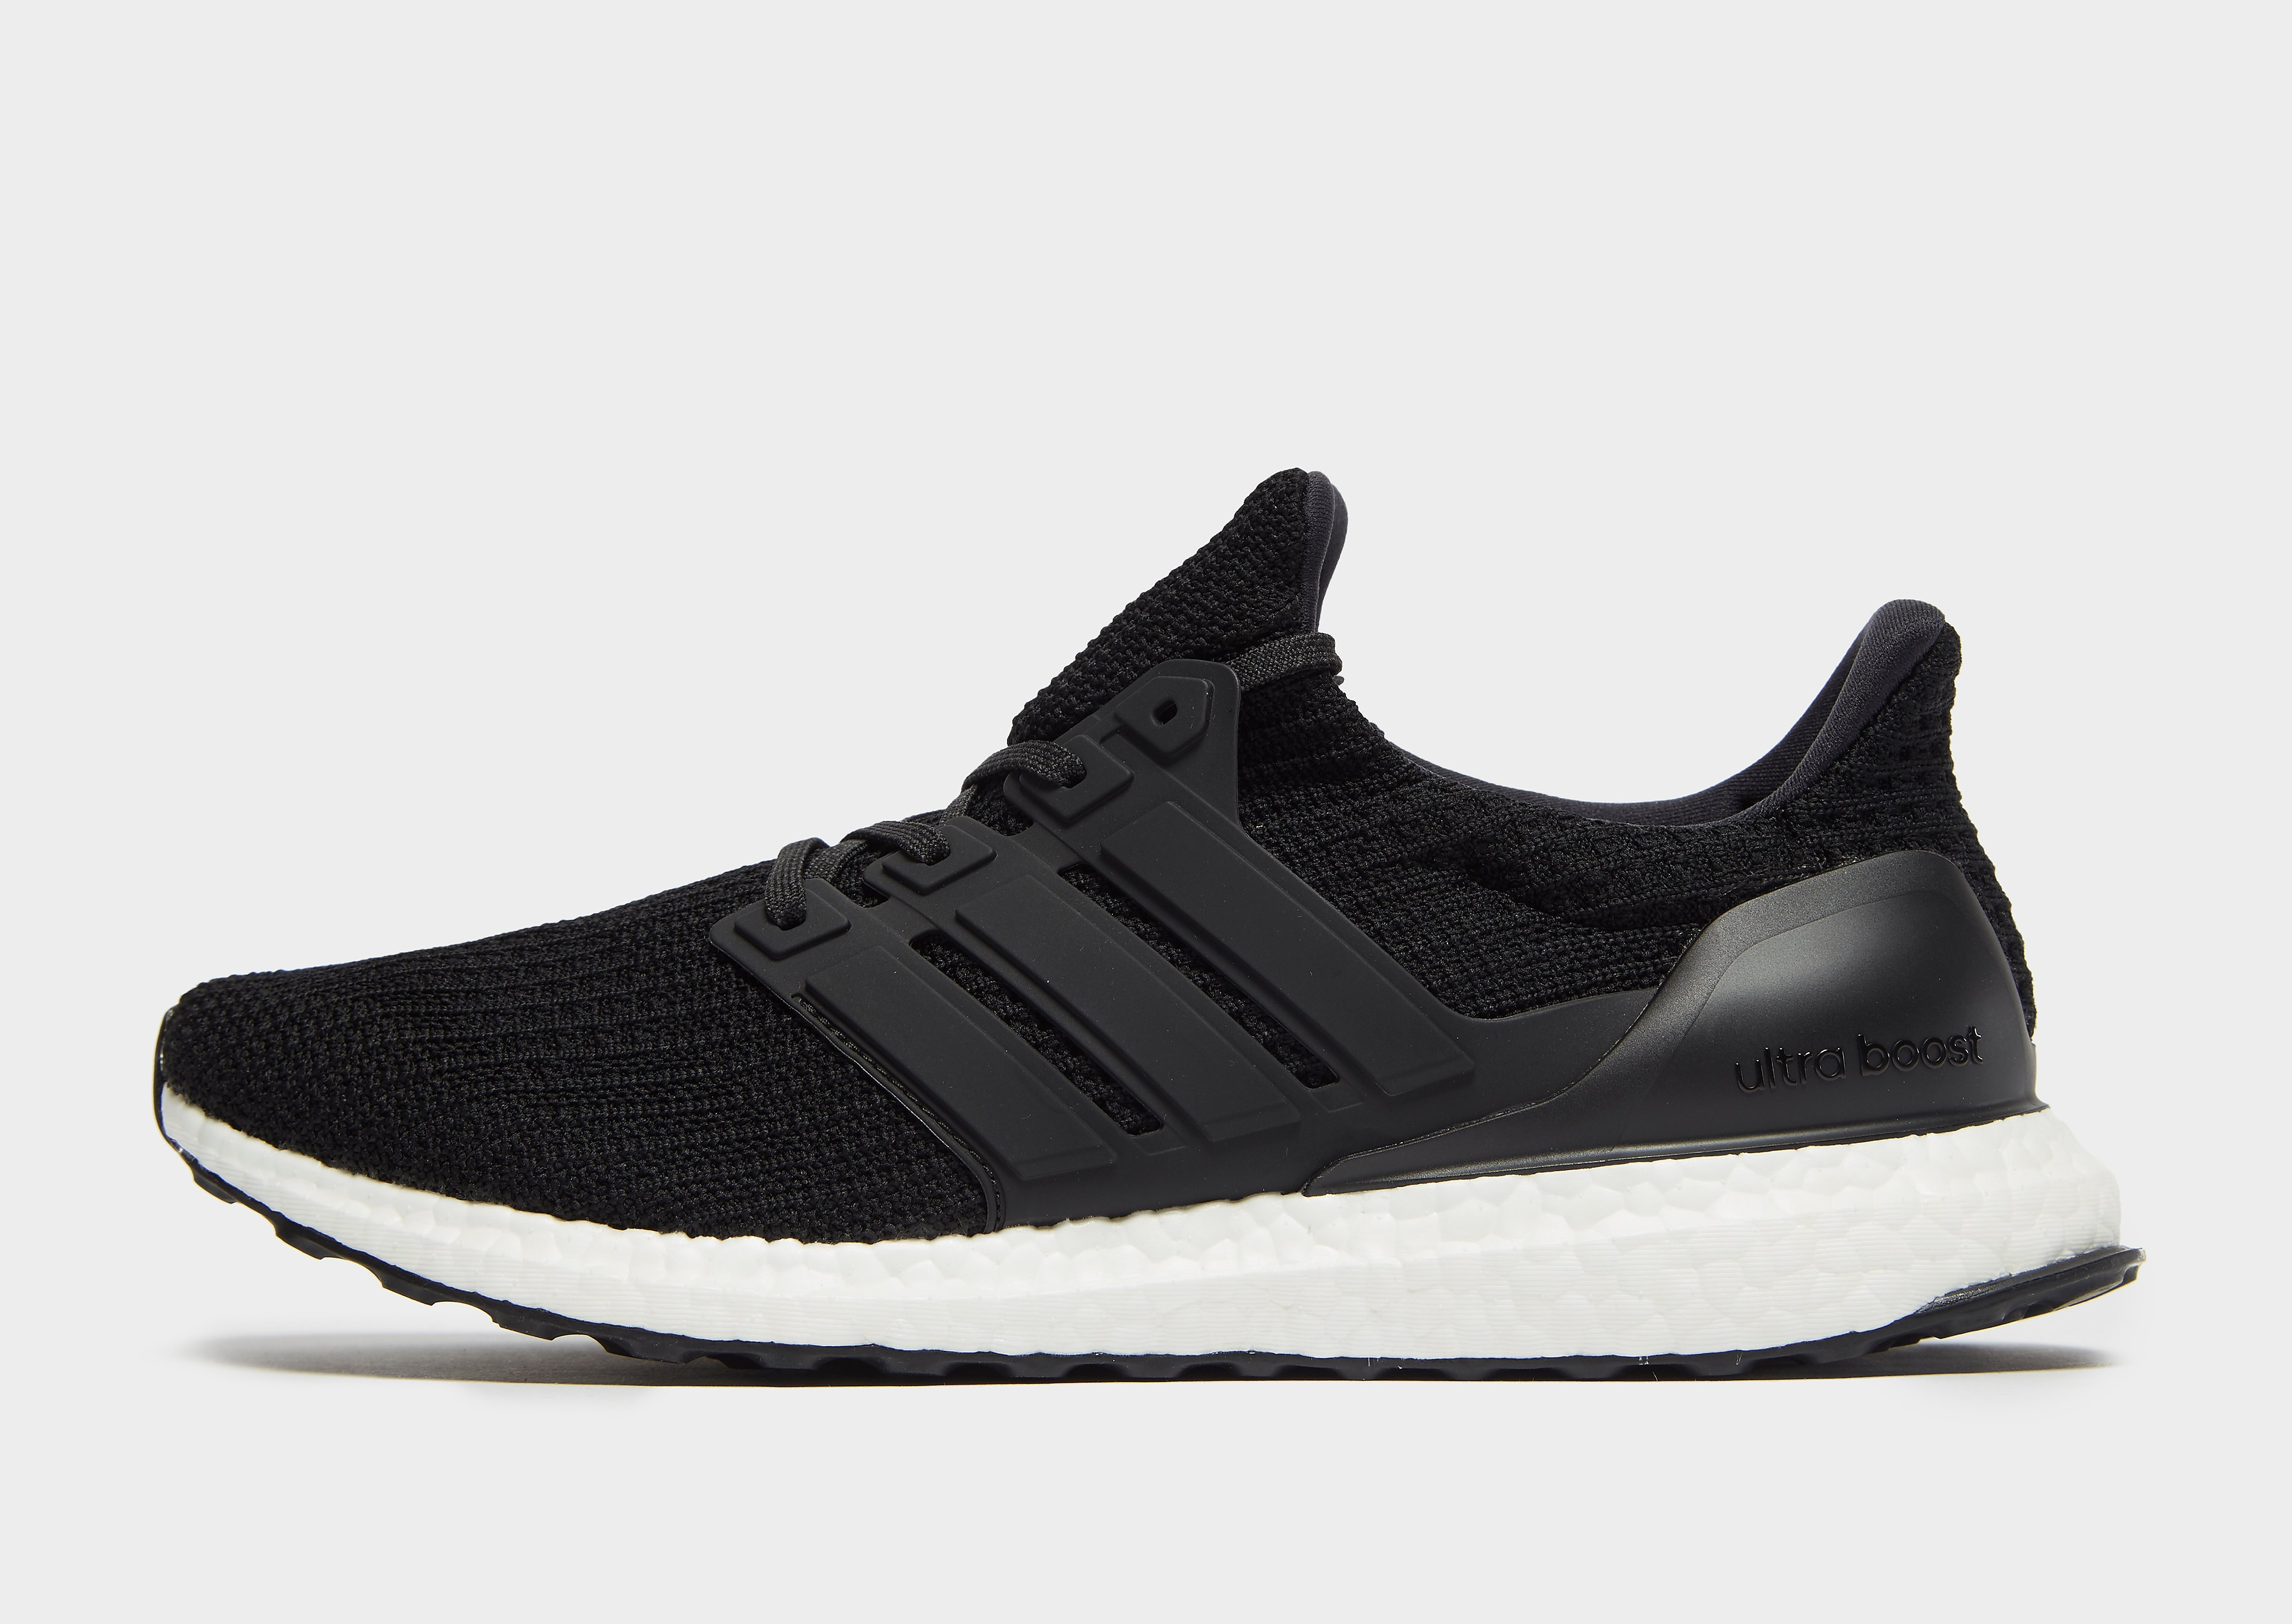 Adidas Pure Boost DPR GRIS hombre  compare Bluewater